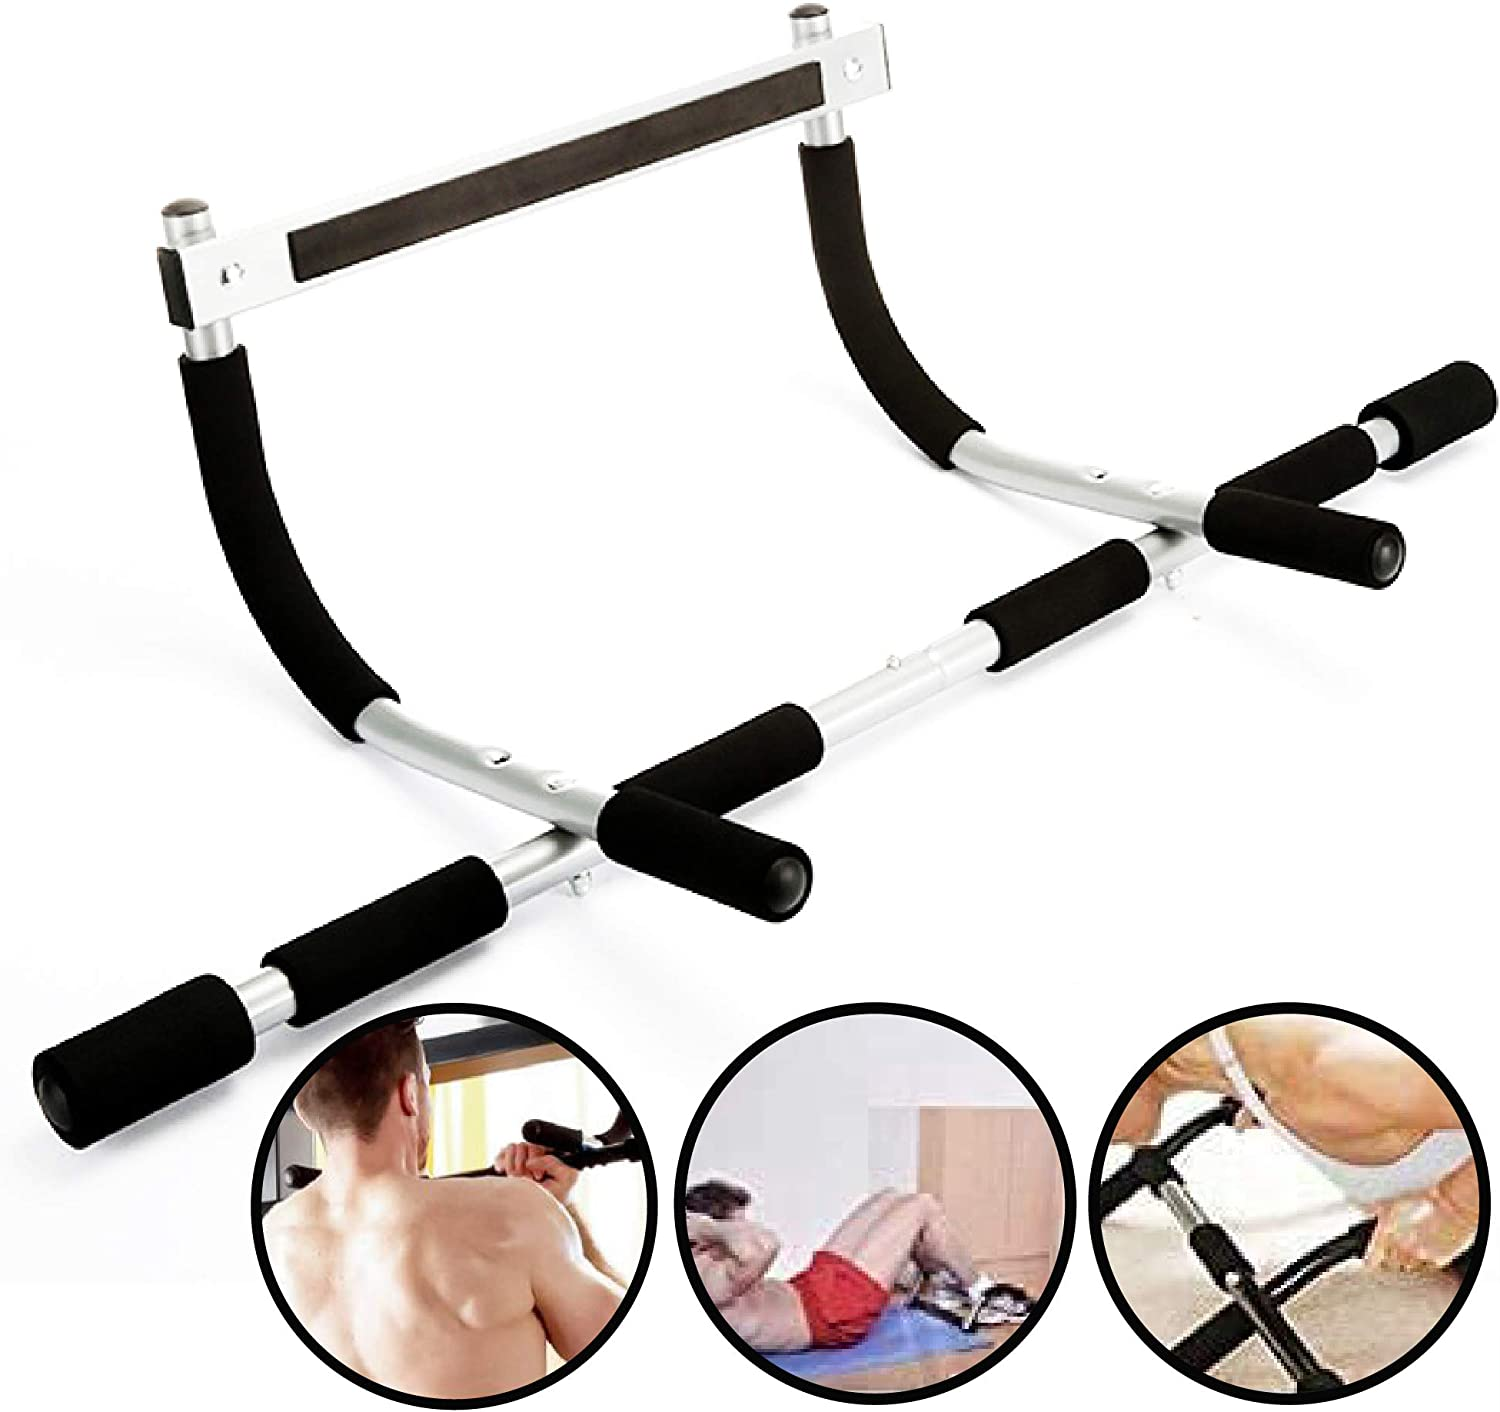 TOMUM Pull Up Bar for Doorway - Multi Grip Chin Up Pull-Up Bar with Foam Covered Handles - Premium Exercise Equipment for Home Fitness - Portable Multi Gym System for Men Trainers Upper Body Workouts